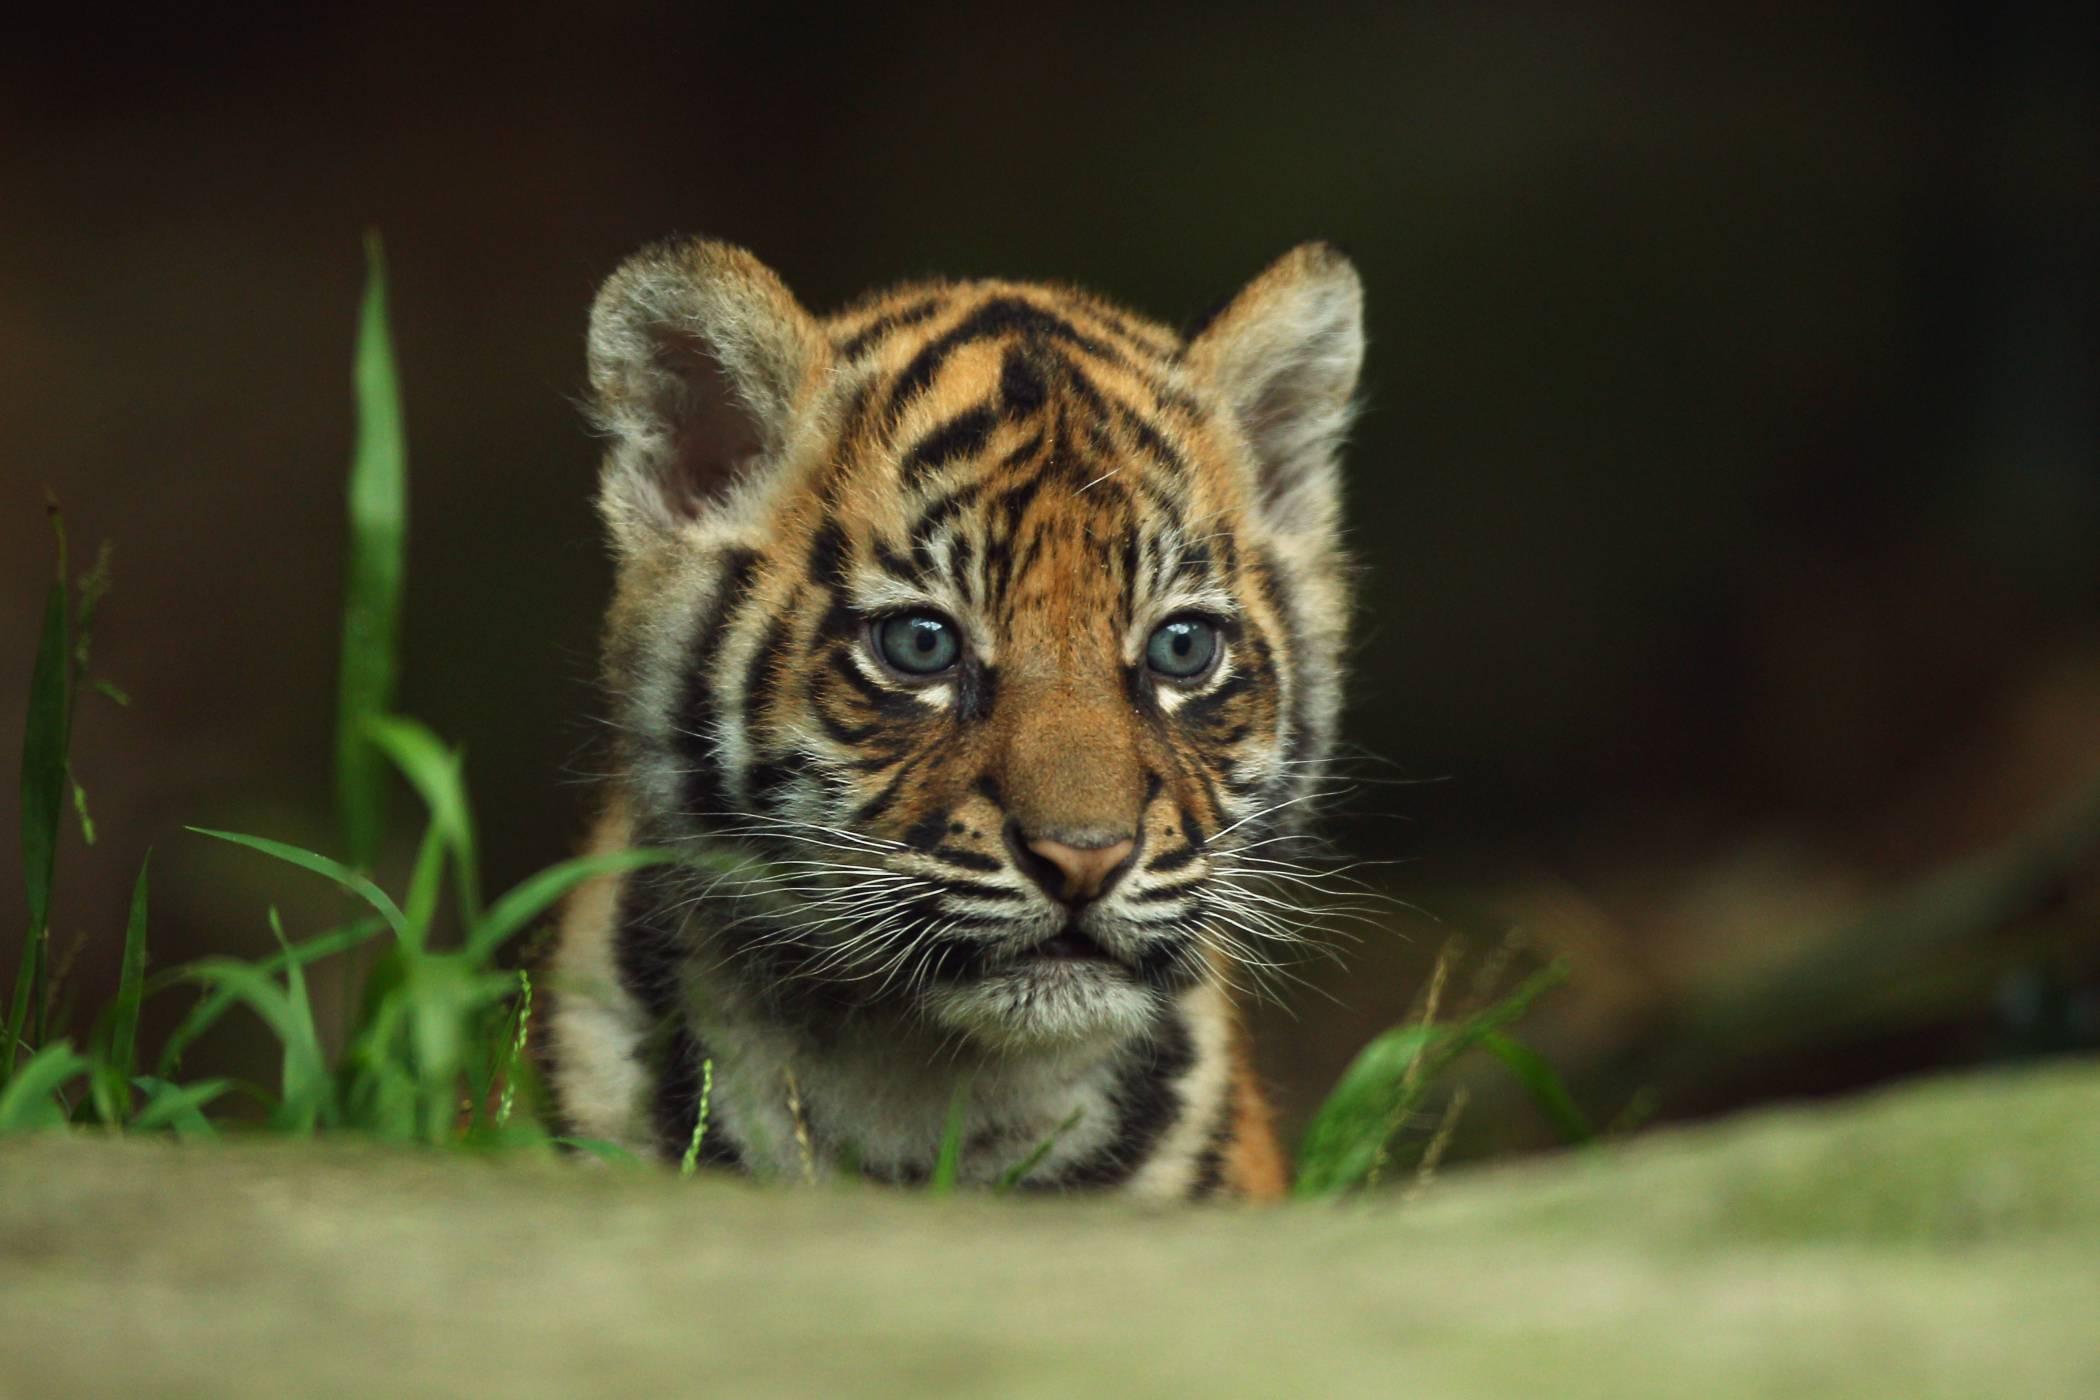 Wallpaper Hd Tiger Baby Images 3 Wallpapers Hdwalljoy